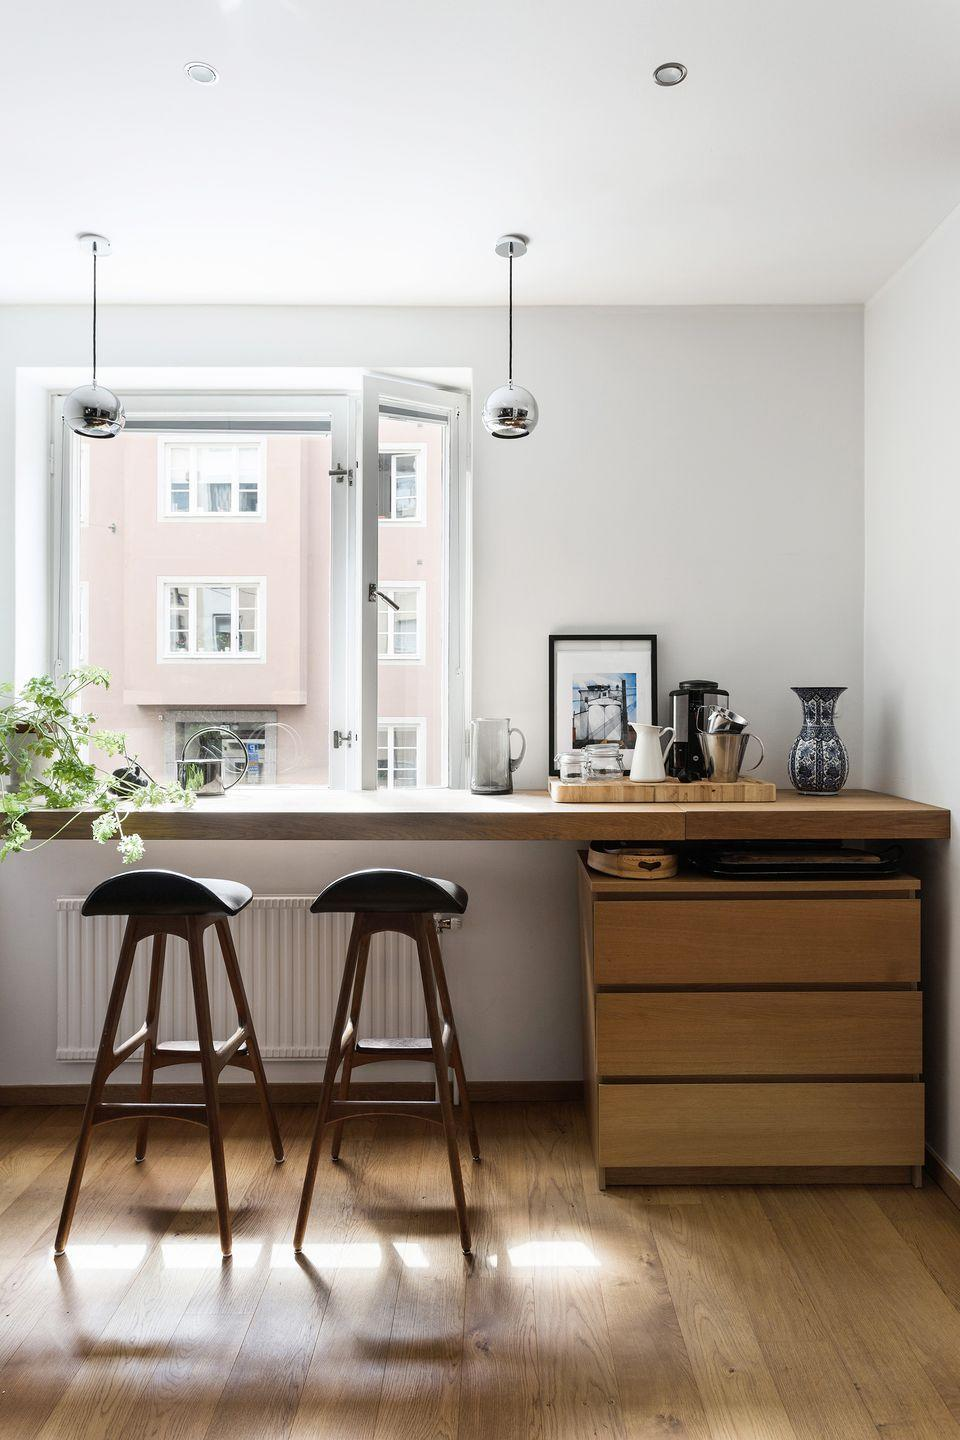 """<p>On the other hand, your could make the most of your eat-in kitchen by keeping surfaces clear and sliding up some stools to an airy window nook. This minimalist <a href=""""https://www.fantasticfrank.com/"""" rel=""""nofollow noopener"""" target=""""_blank"""" data-ylk=""""slk:Fantastic Frank"""" class=""""link rapid-noclick-resp"""">Fantastic Frank</a> space is perfect for dining and working from home. </p>"""